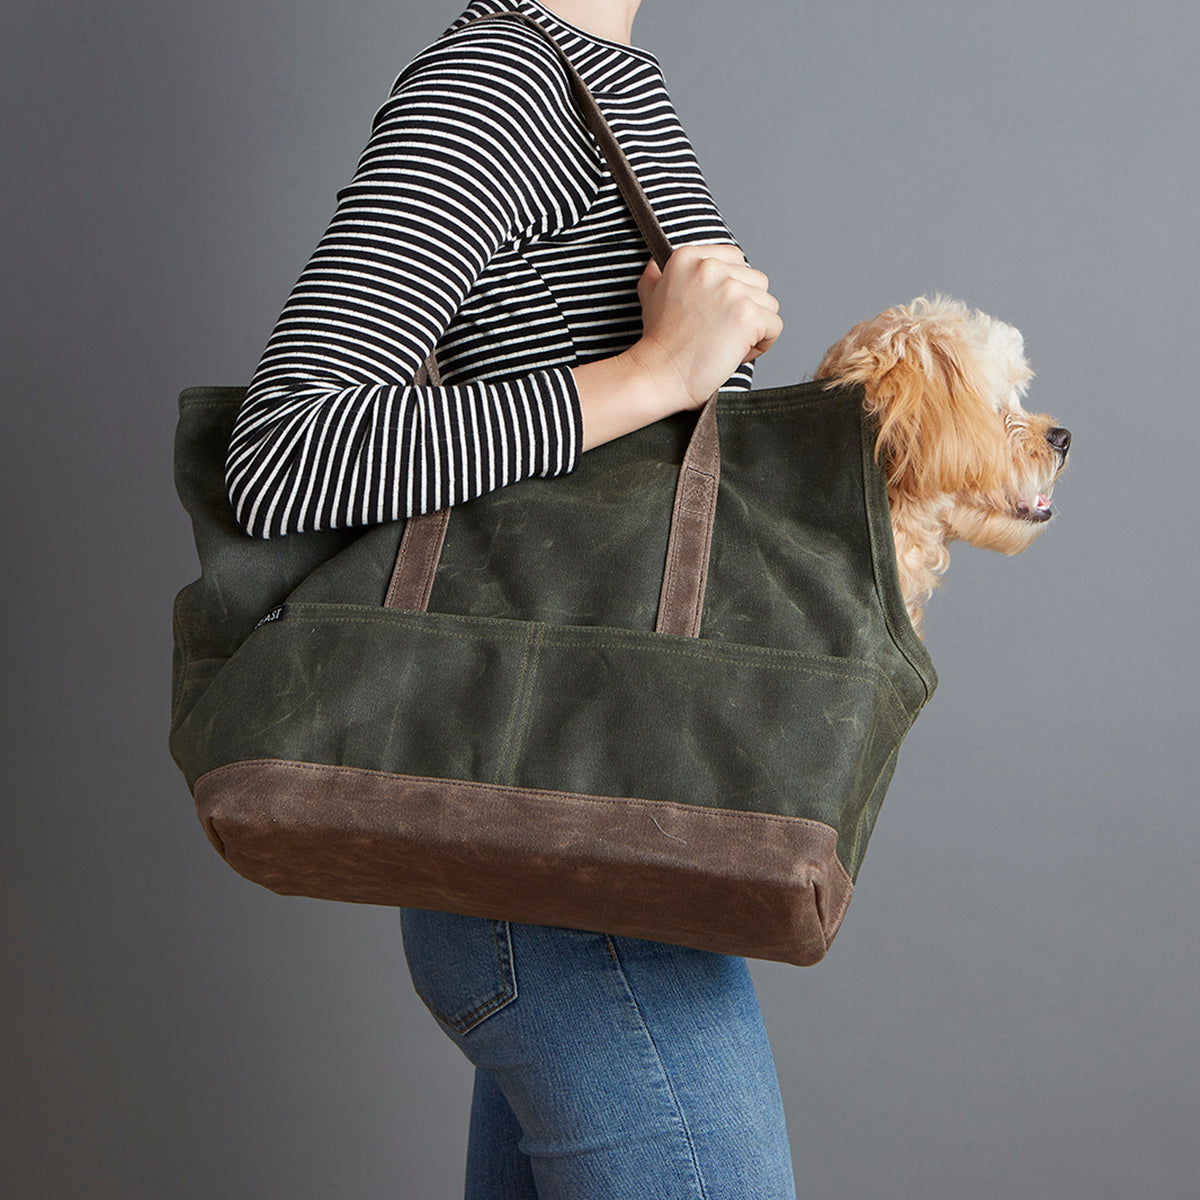 Dog Carrier - Sadie Waxed Cotton Open Tote